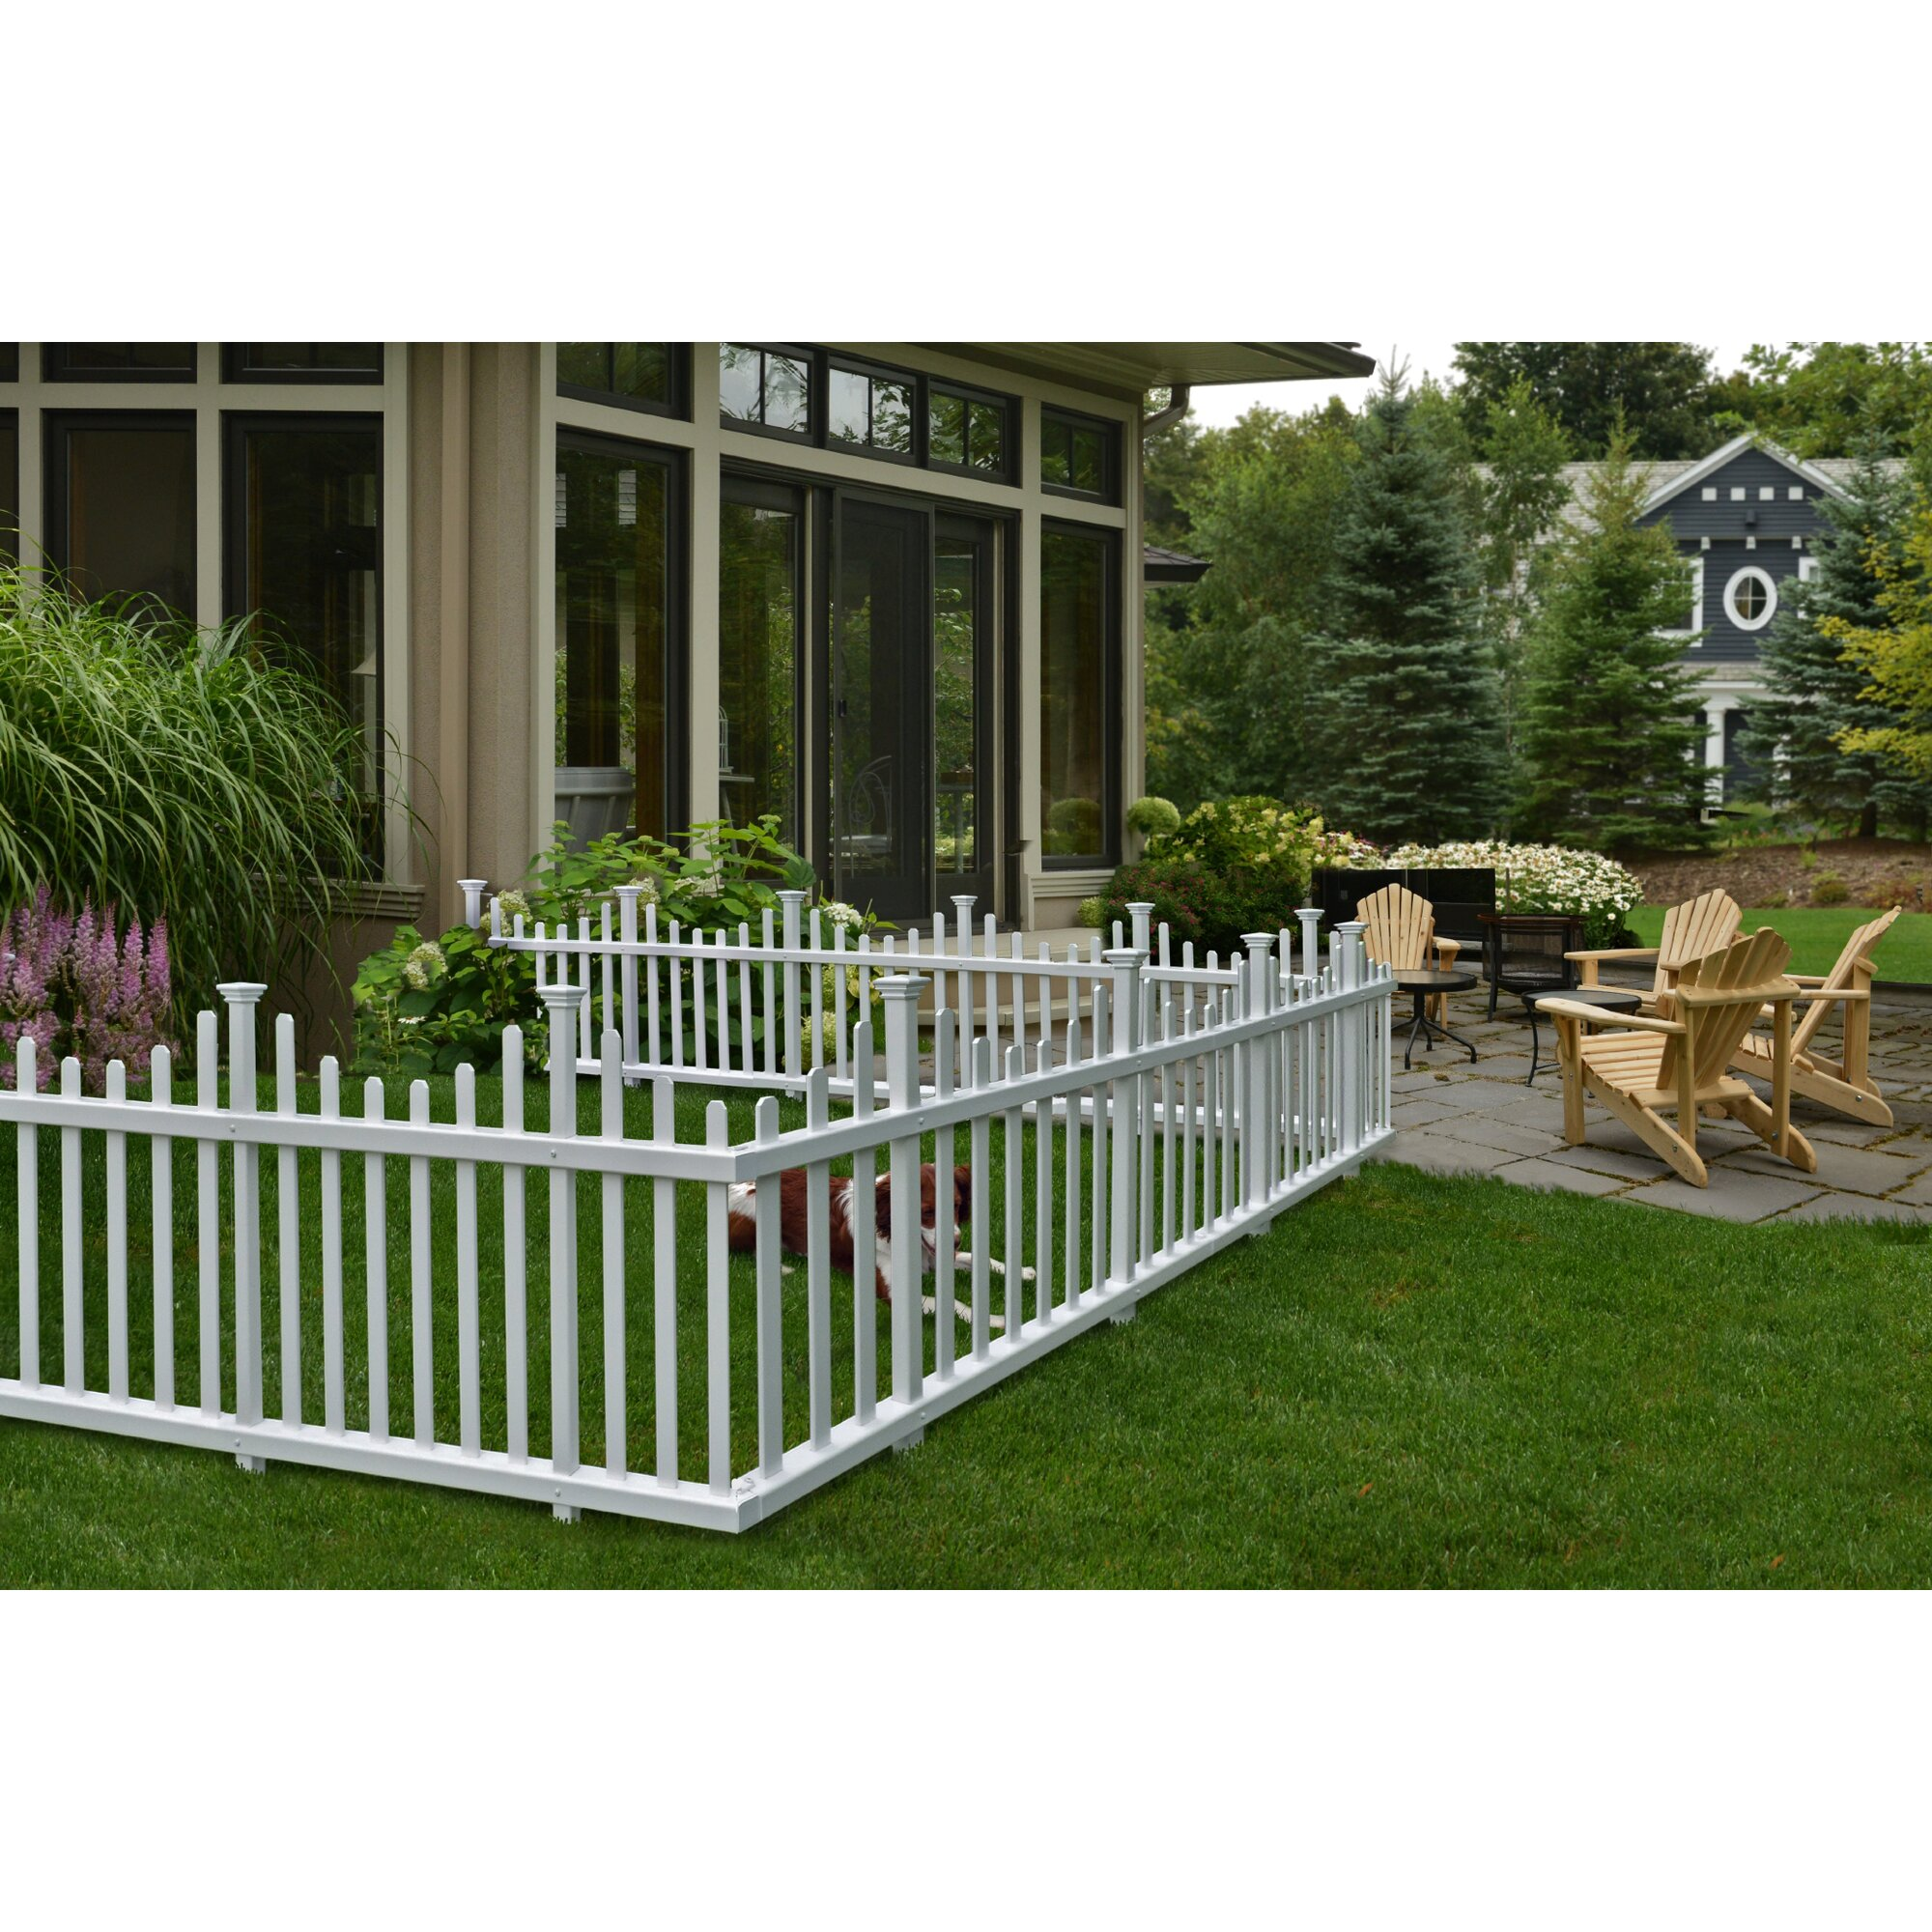 Zippity outdoor products madison no dig vinyl picket garden fence reviews wayfair - Vinyl railing reviews ...